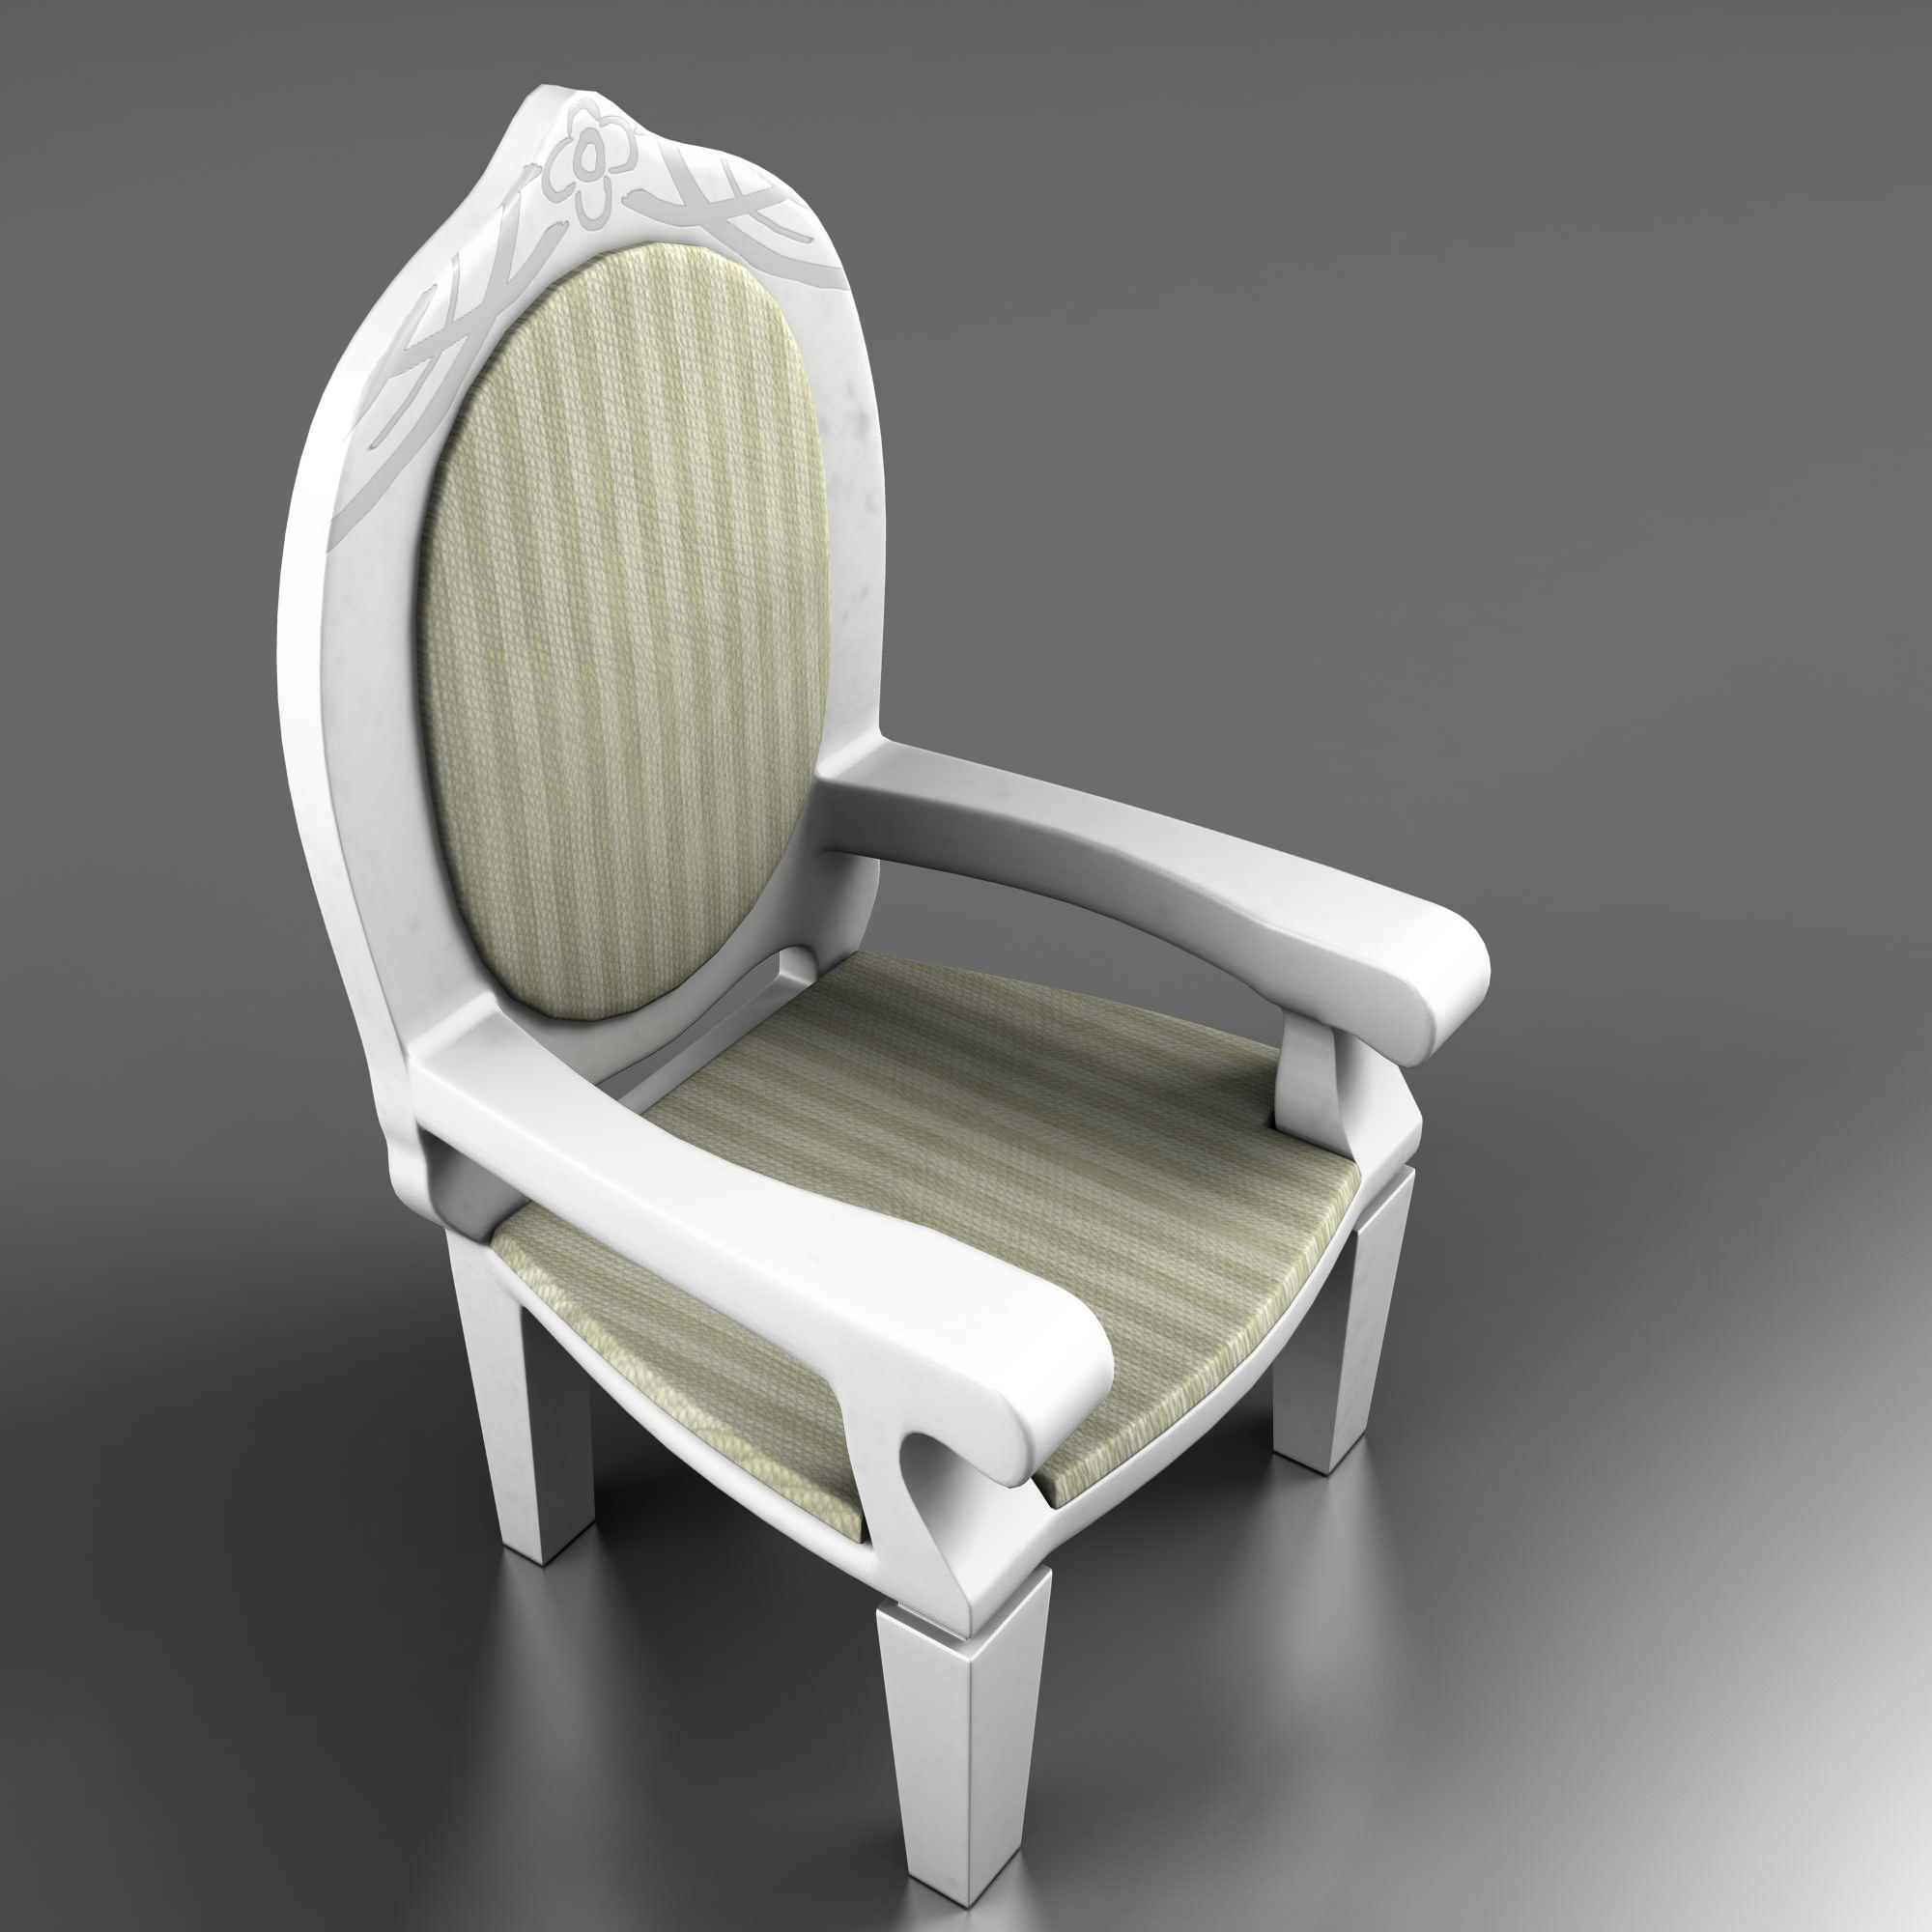 dolls pushchair 3d model 3ds max fbx ma mb obj 157398